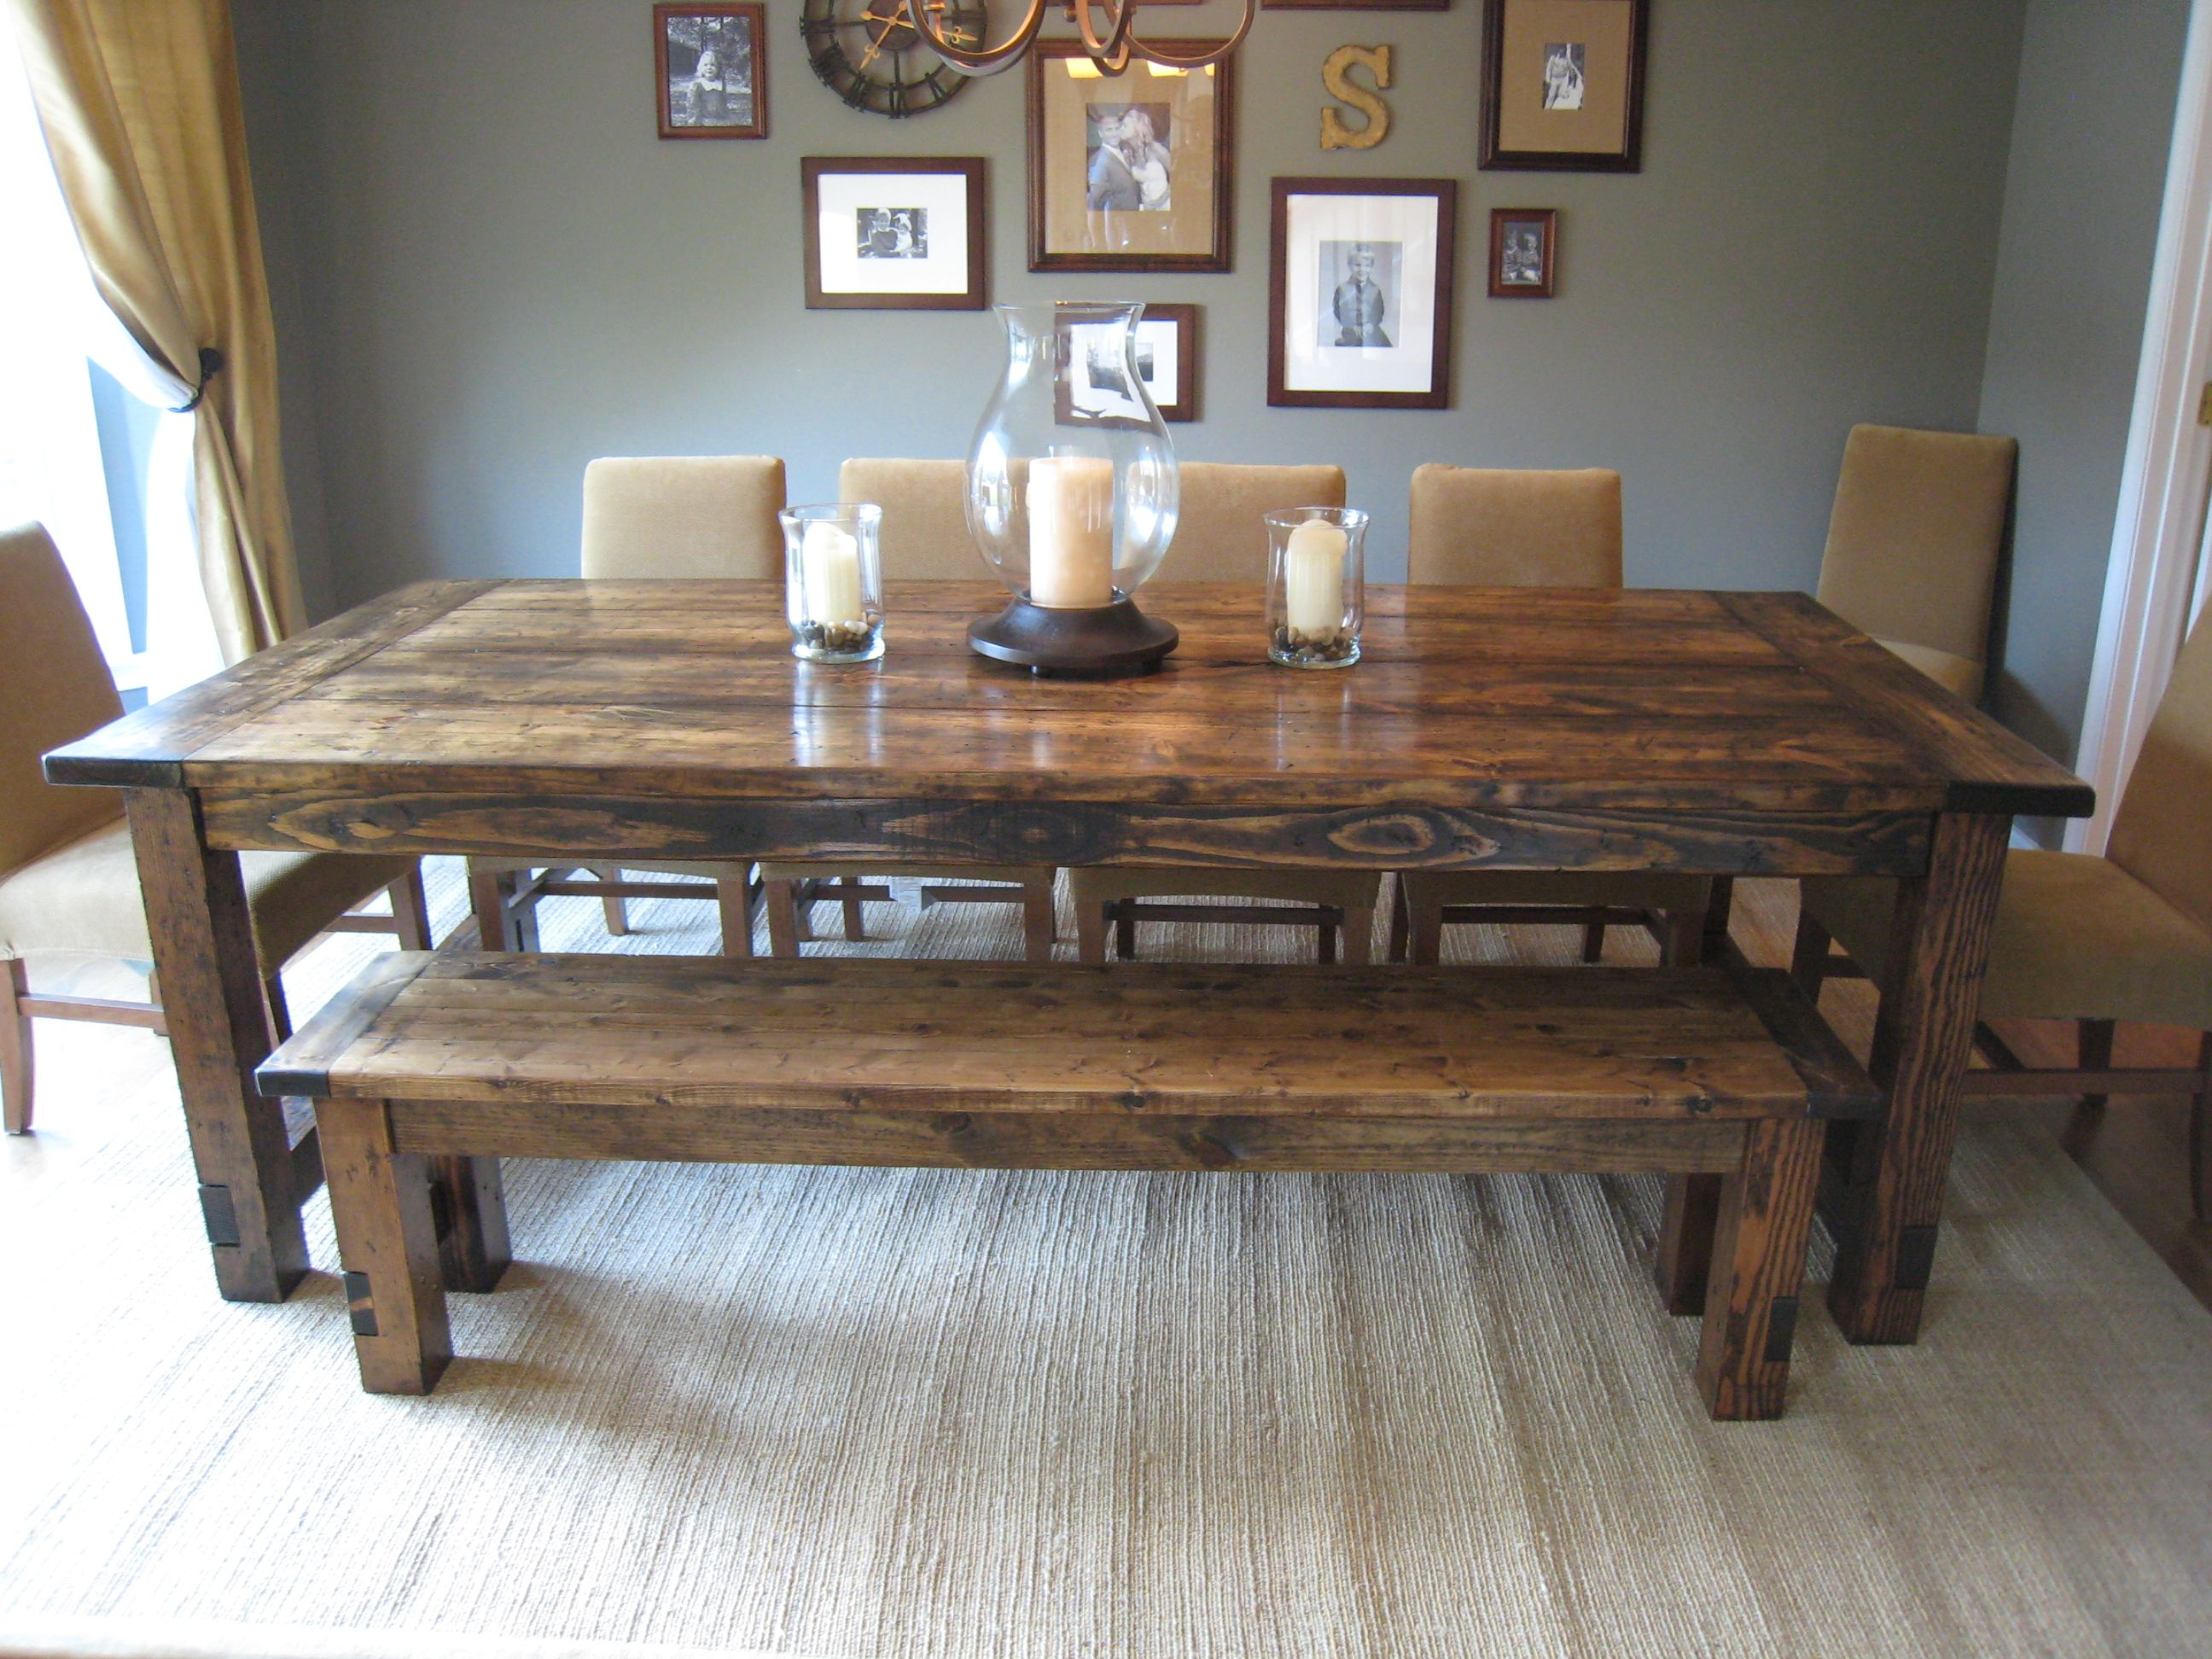 Rustic Dining Room Tables With Bench restoration hardware farmhouse table replica. they made it